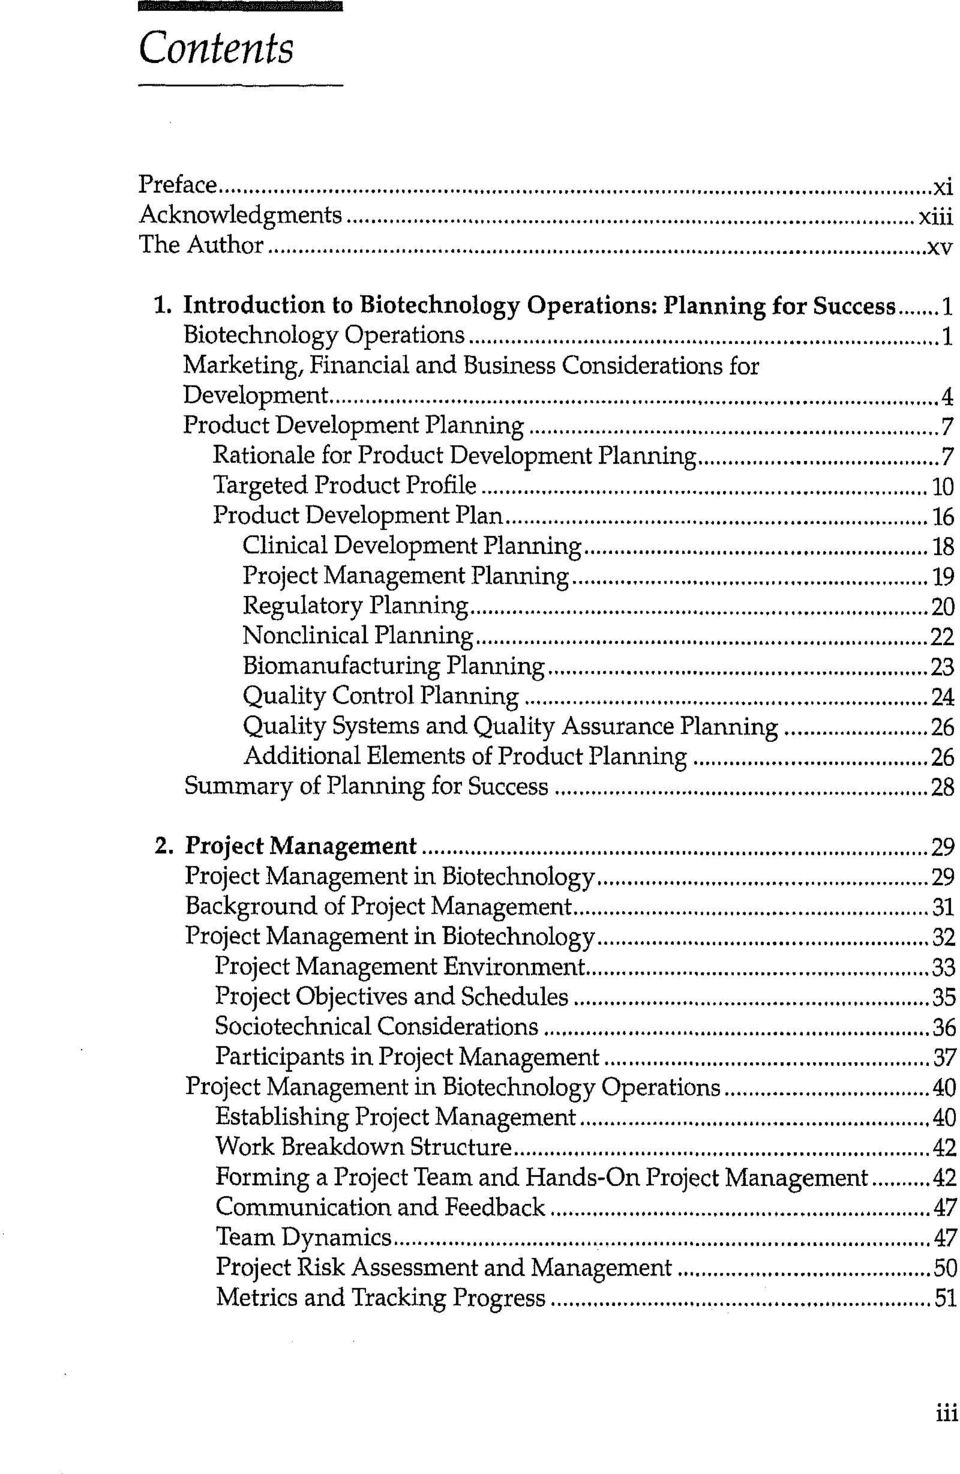 for Product Development Planning 7 Targeted Product Profile 10 Product Development Plan 16 Clinical Development Planning 18 Project Management - Planning 19 Regulatory Planning 20 Nonclinical